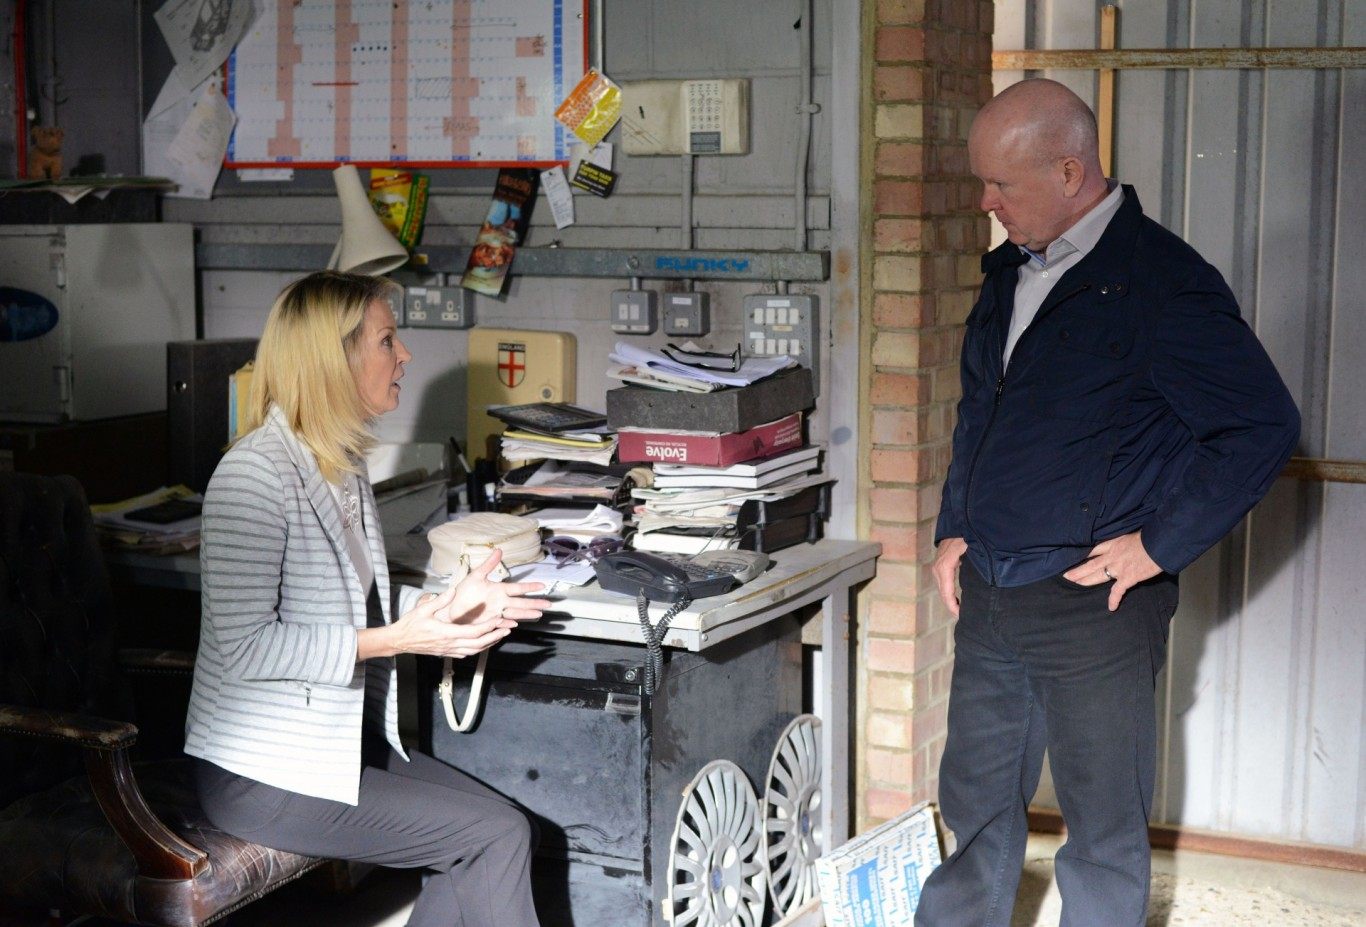 Gillian Taylforth and Steve McFadden in EastEnders